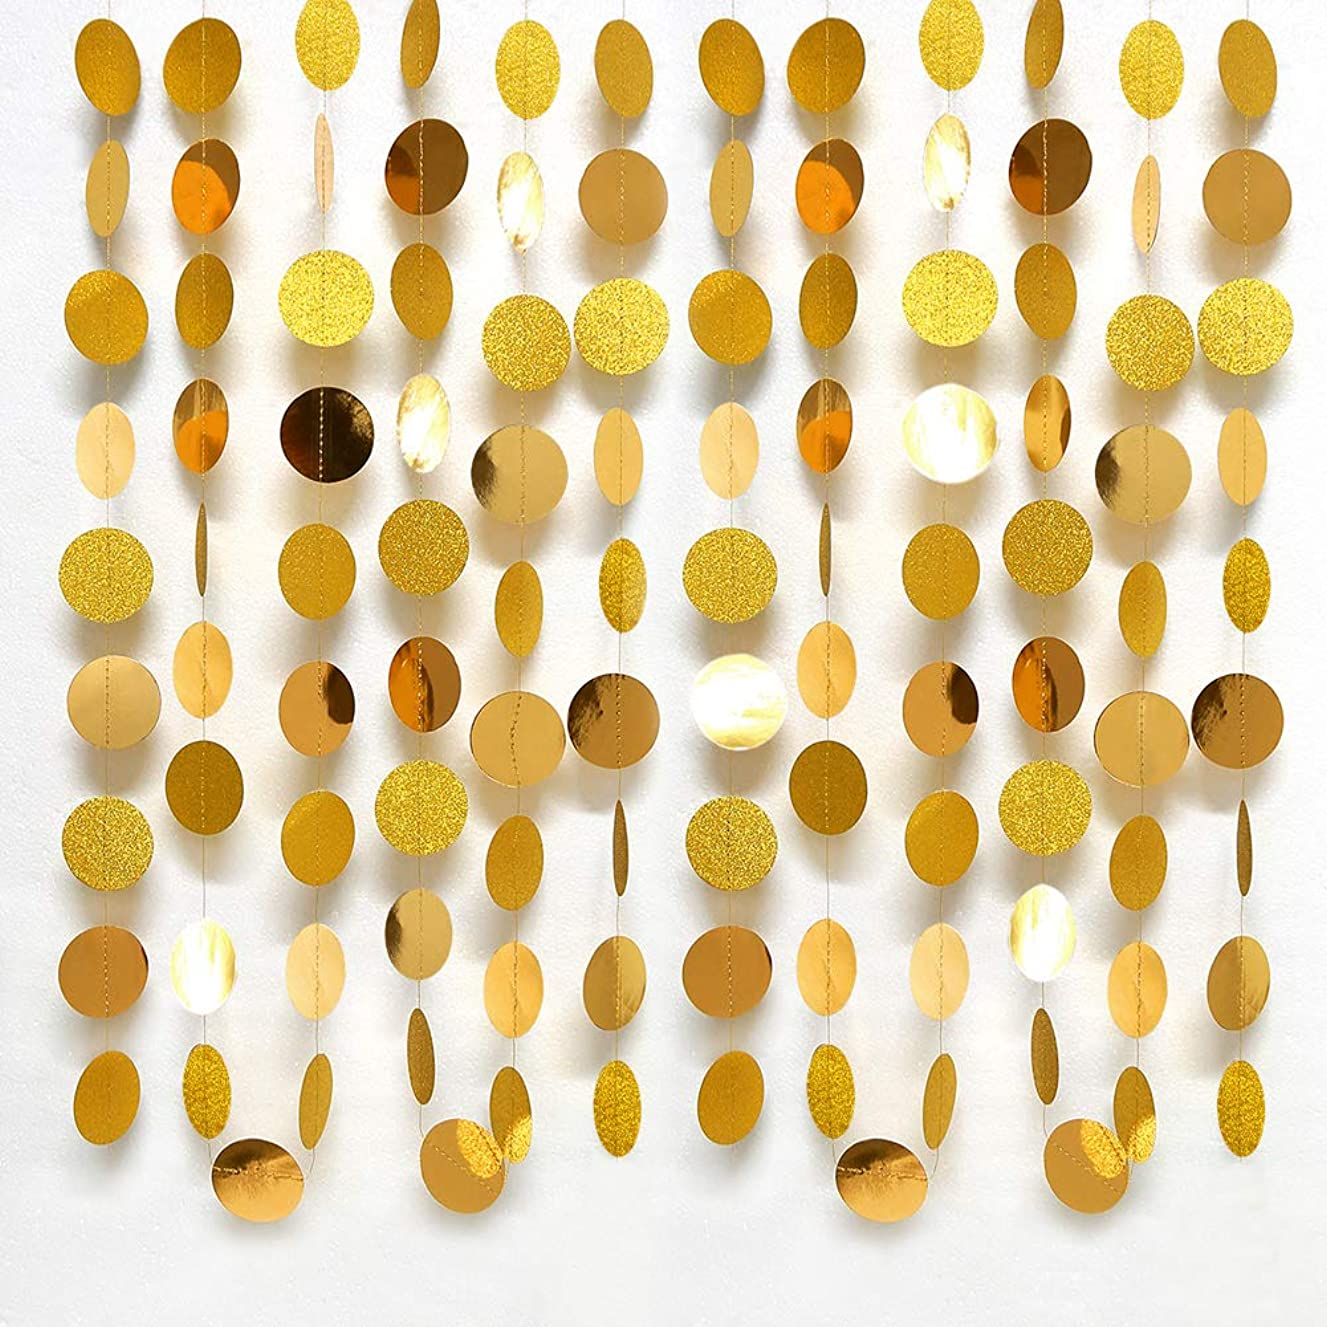 Gold Circle dots Garland Party Decorations Paper Polka Dots Streamers Hanging Decor Backdrop Bunting for Wedding/Birthday/Baby Shower/Graduation/New Year/Christmas/Home/Garden/Barbecue/Doorway